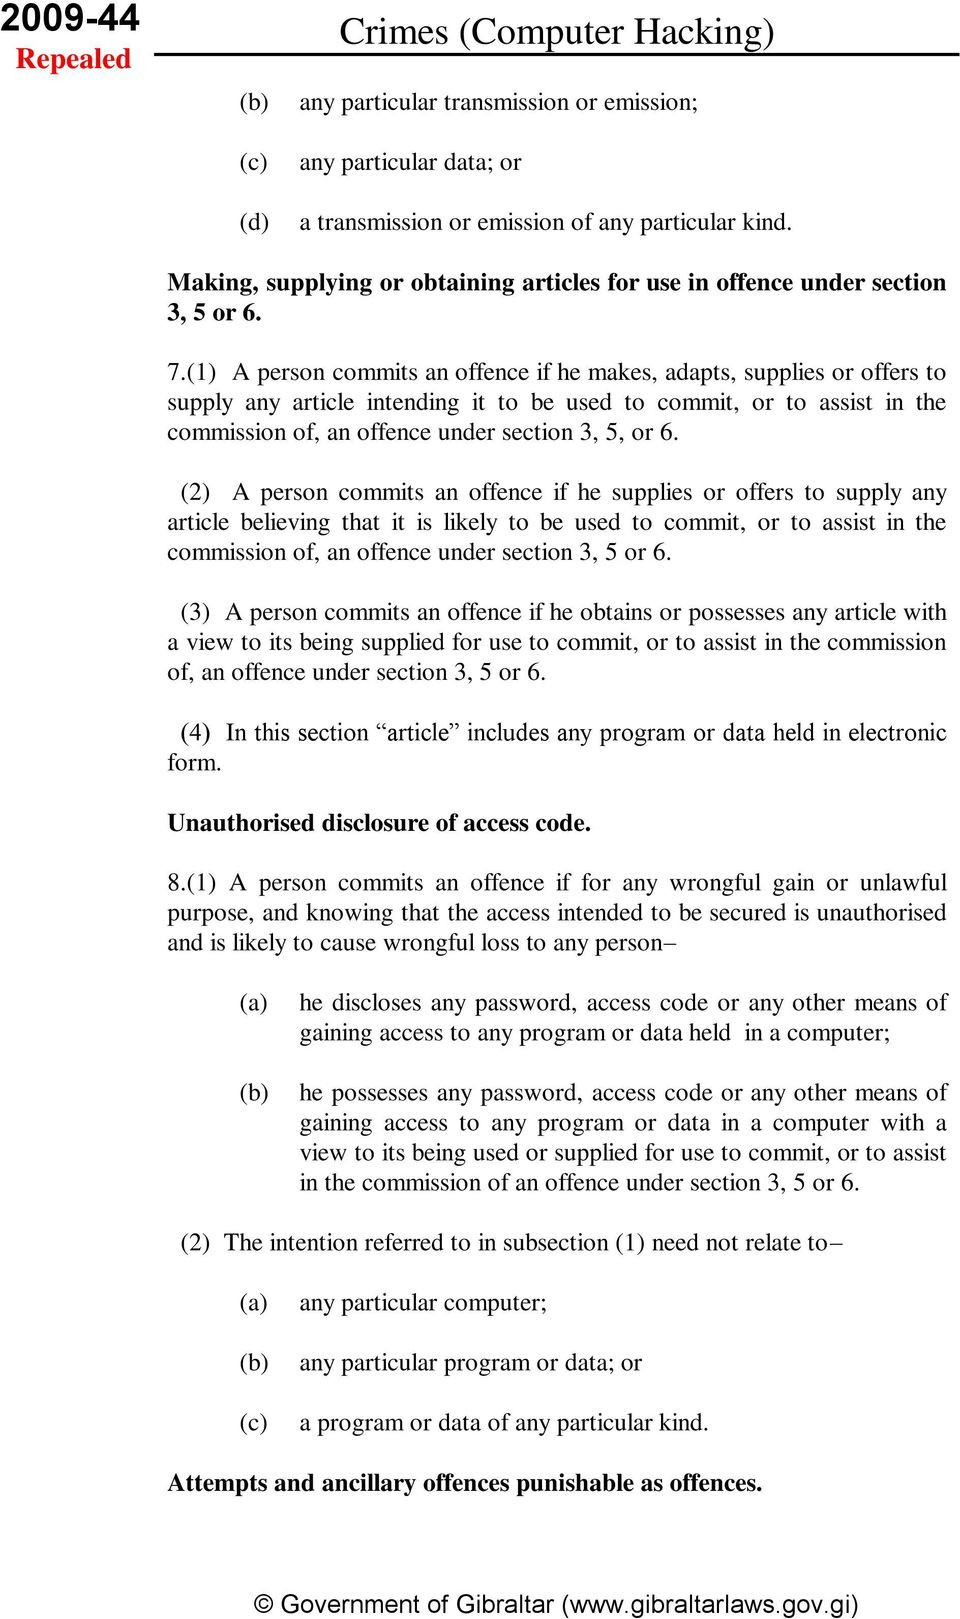 (1) A person commits an offence if he makes, adapts, supplies or offers to supply any article intending it to be used to commit, or to assist in the commission of, an offence under section 3, 5, or 6.